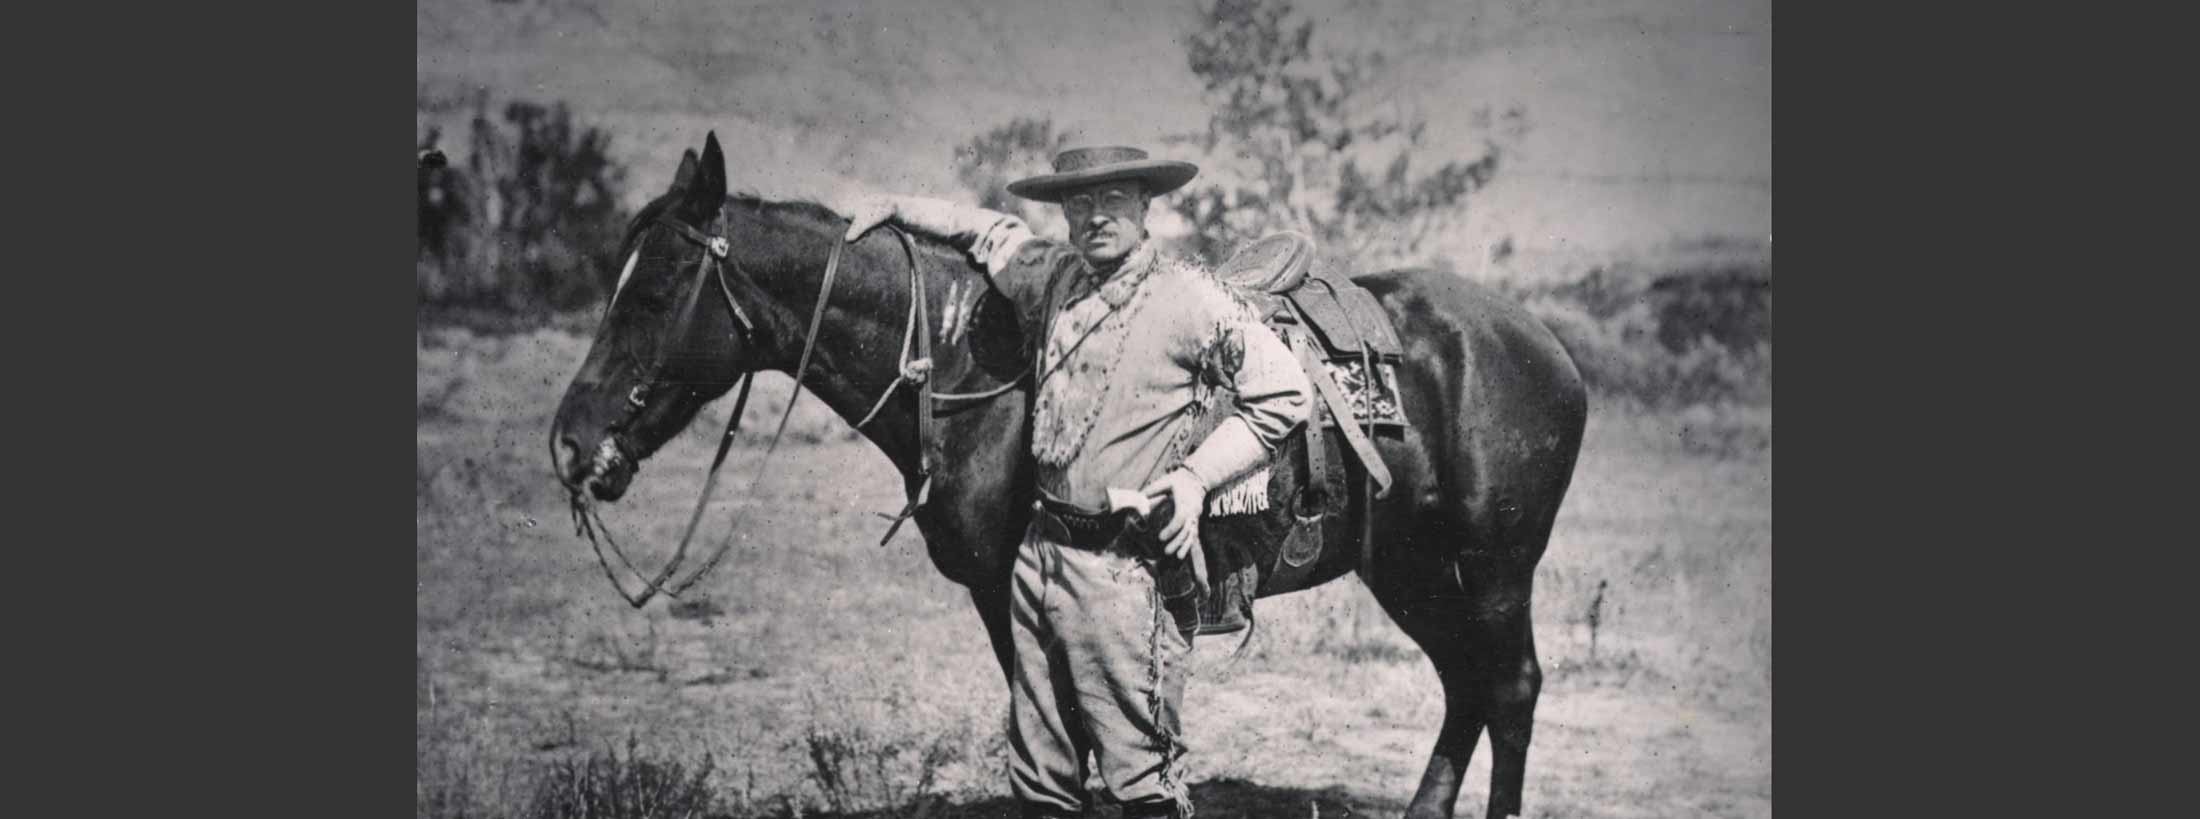 Teddy Roosevelt's Travels across Southeast Montana